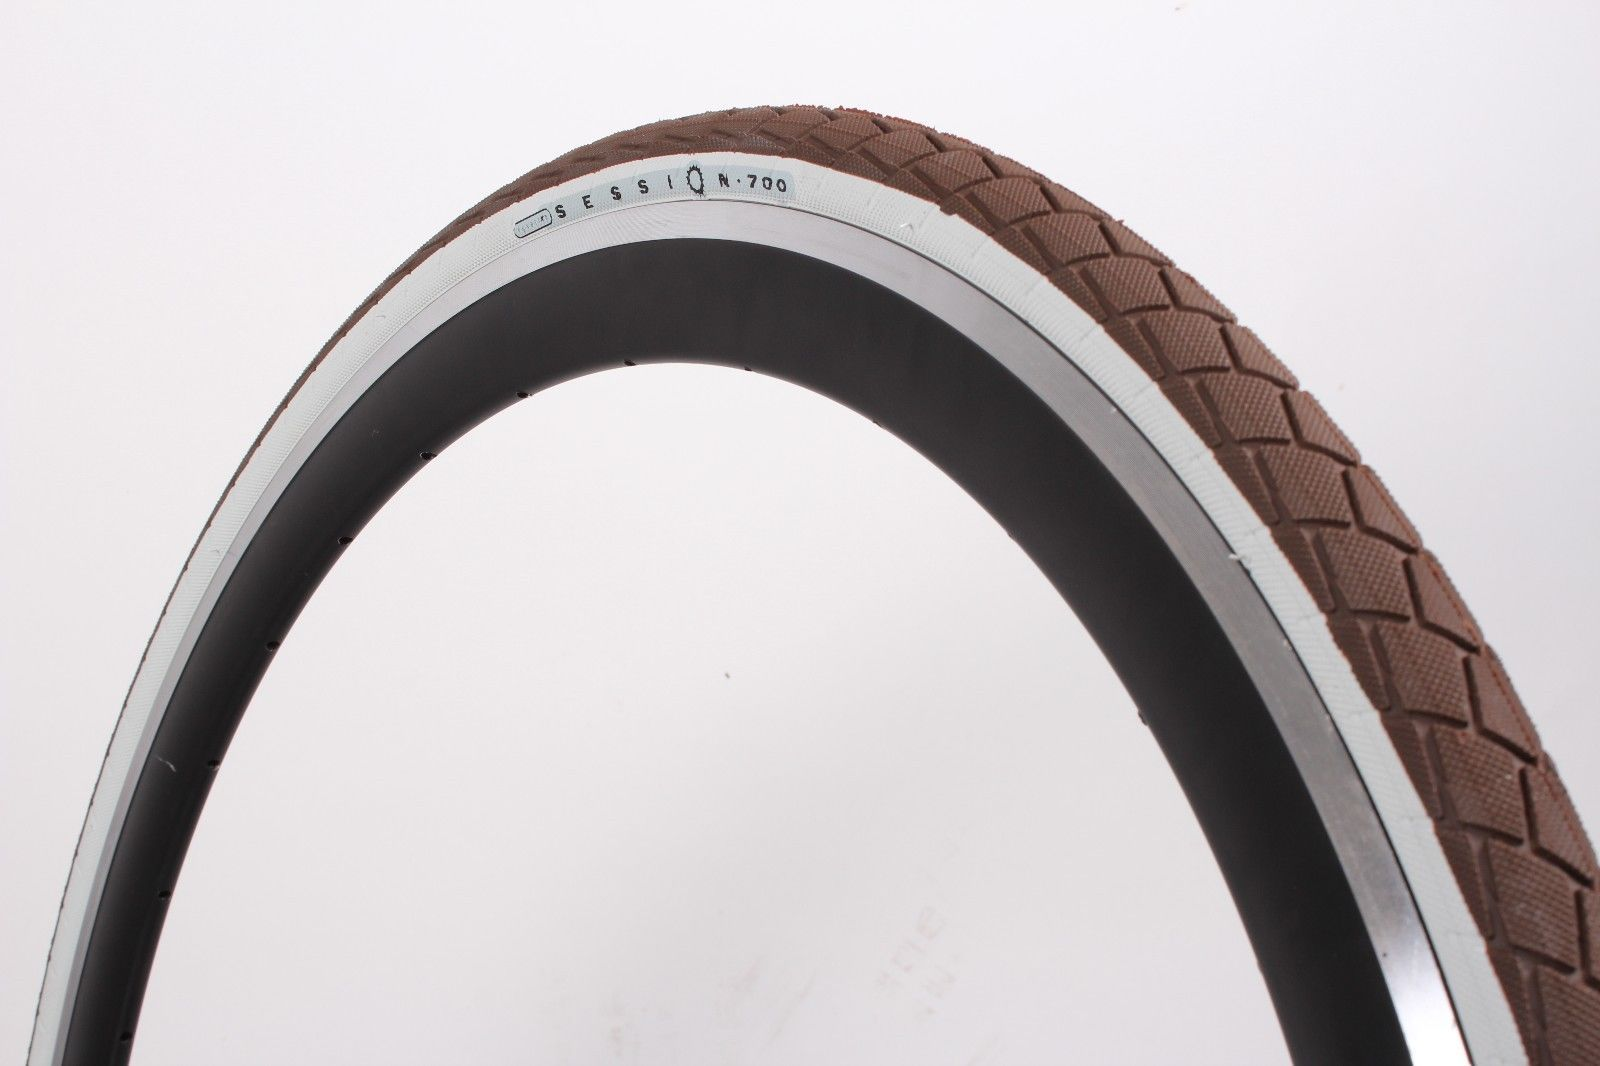 fyxation session 700 brown whitewall 700c road urban commuter tires ebay